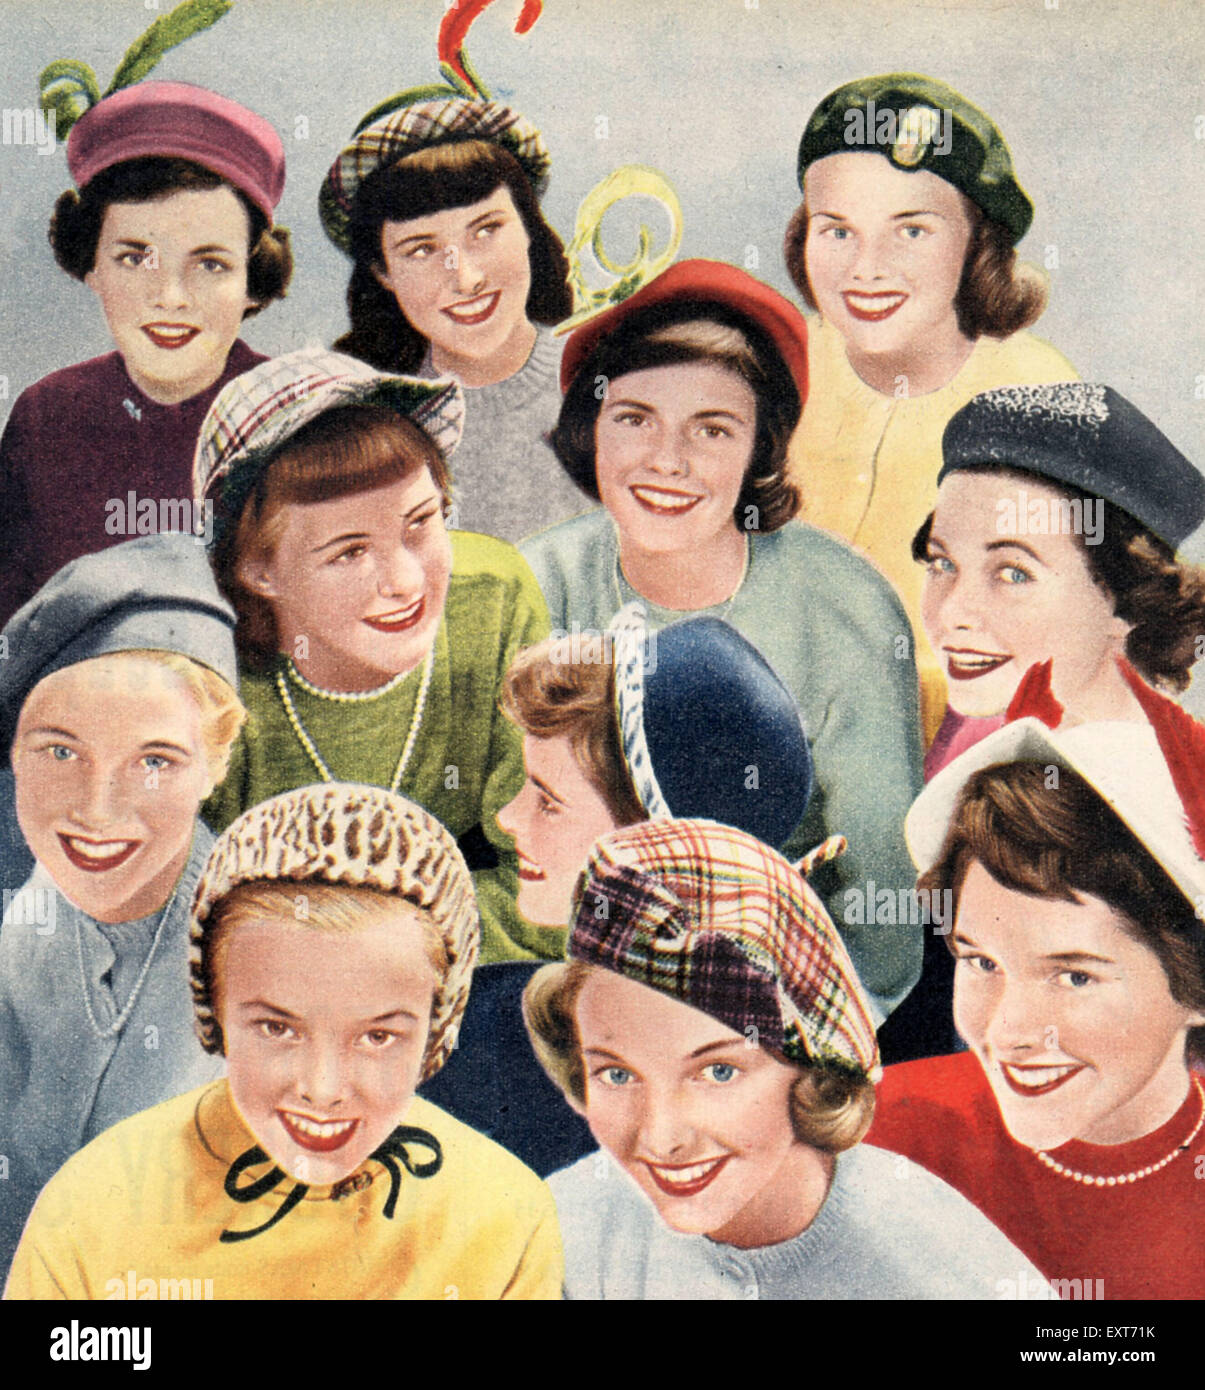 46fbba137180d 1940s Hats Stock Photos   1940s Hats Stock Images - Alamy